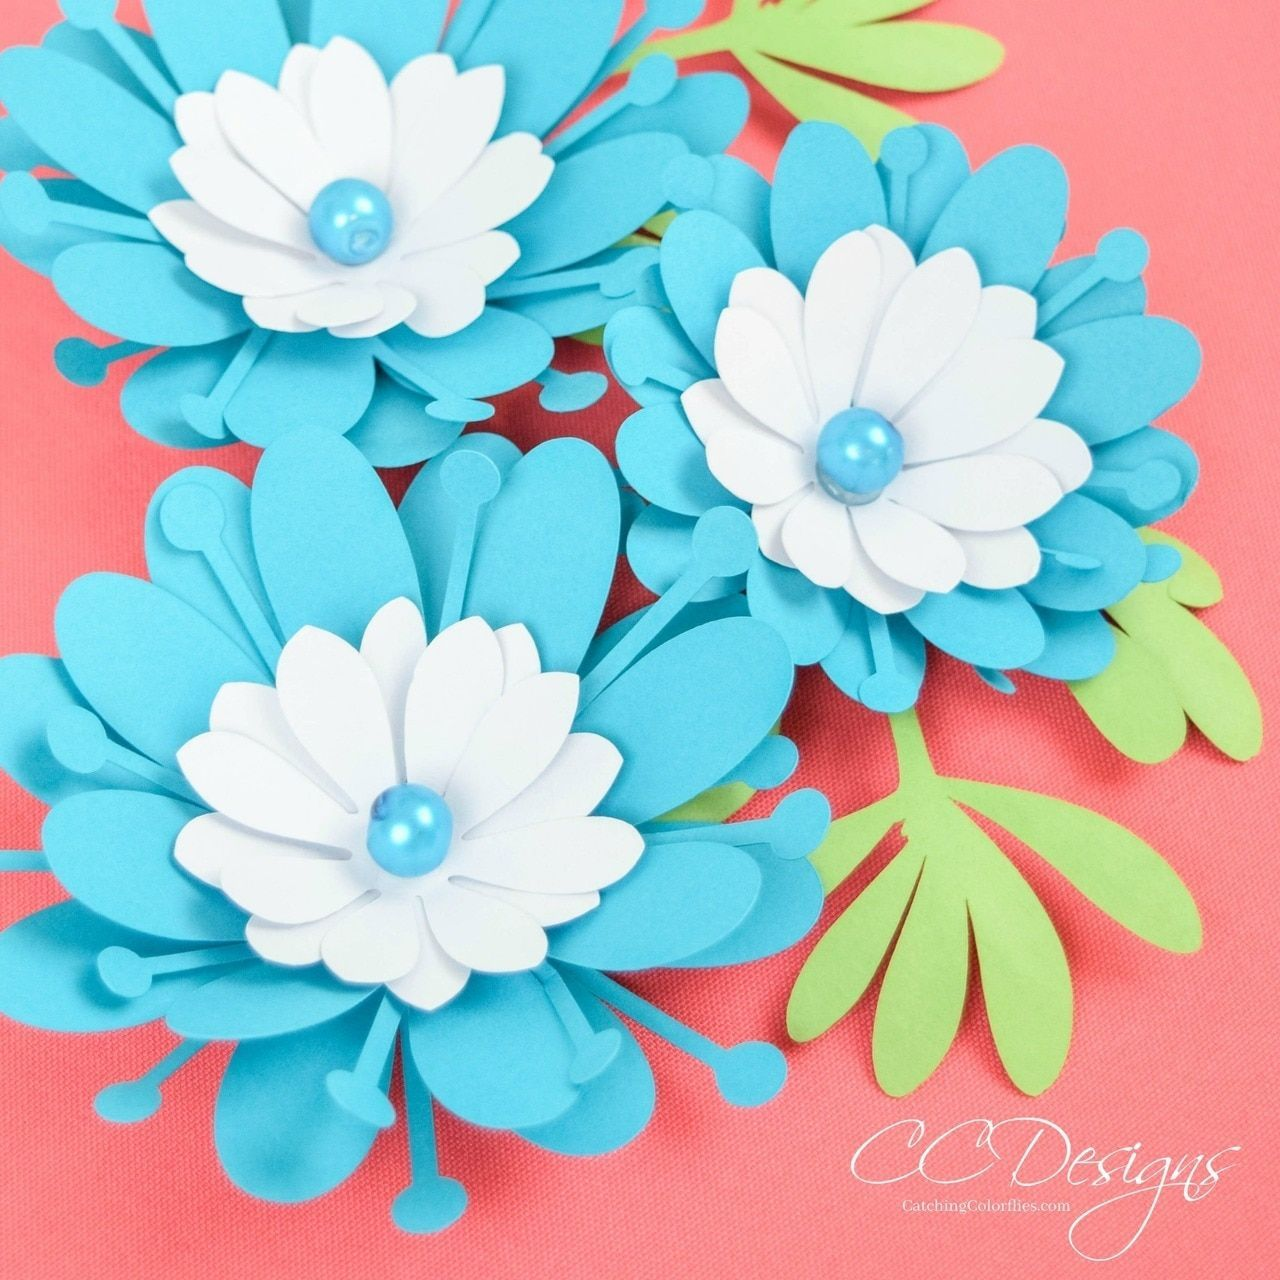 Small Clementine Paper Flower Template - Catching Colorflies #paperflowercenterpieces Small Clementine Paper Flower Template - Catching Colorflies #paperflowercenterpieces